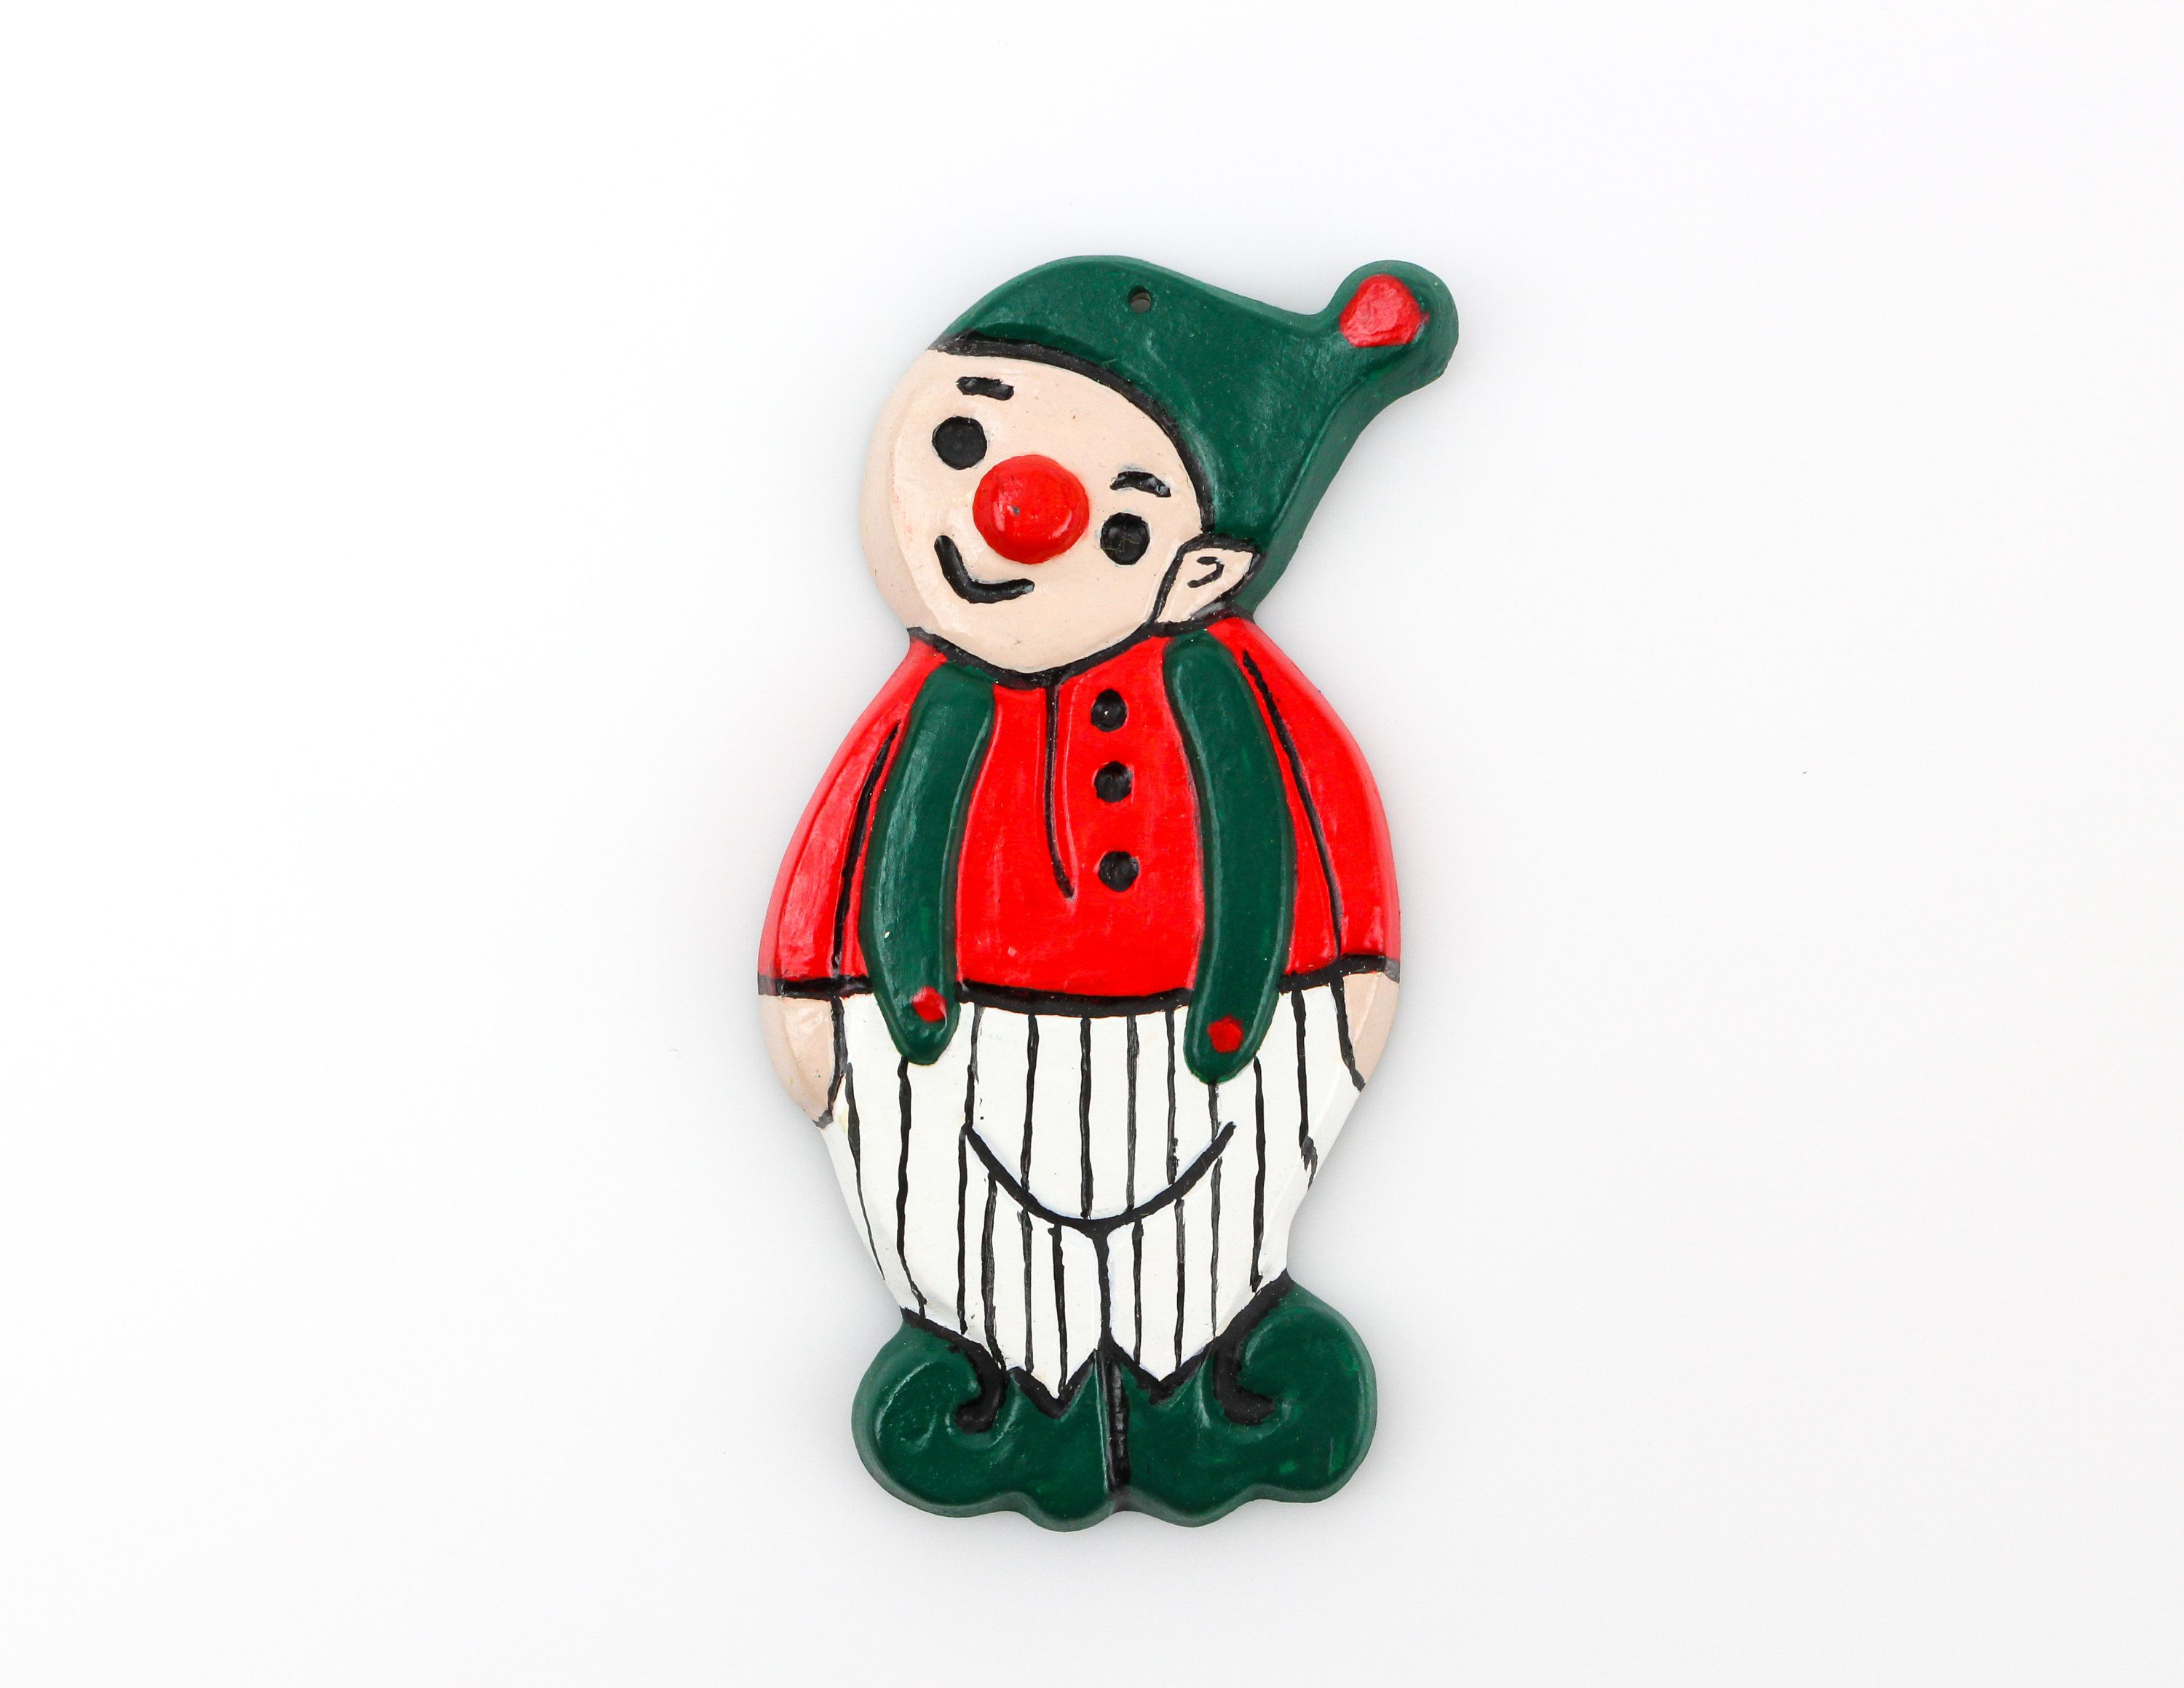 Vintage Handpainted Elf Christmas Ornament by Corkys Molds